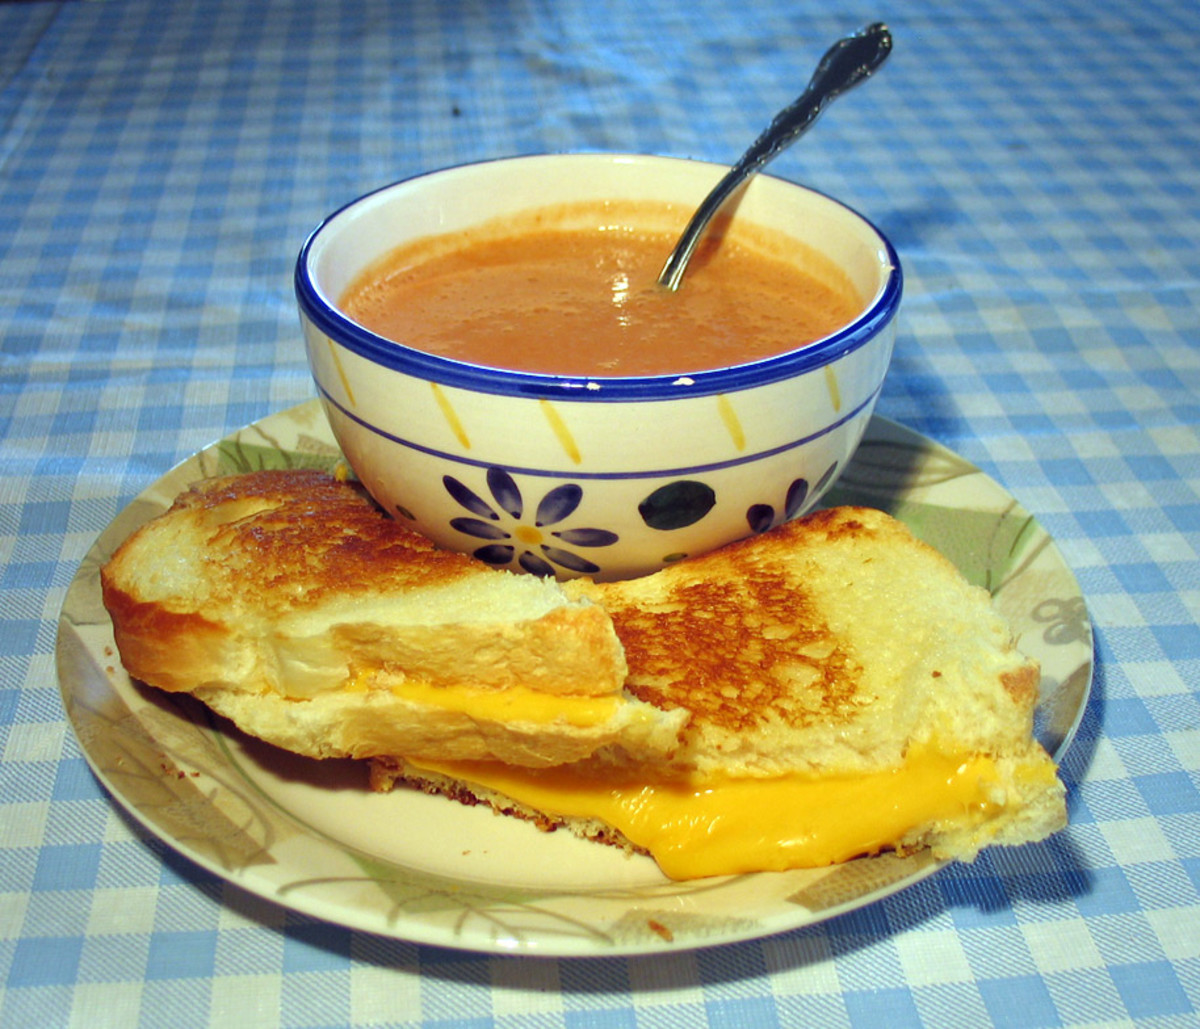 Grilled Cheese With Tomato Soup Is Real Popular In The USA